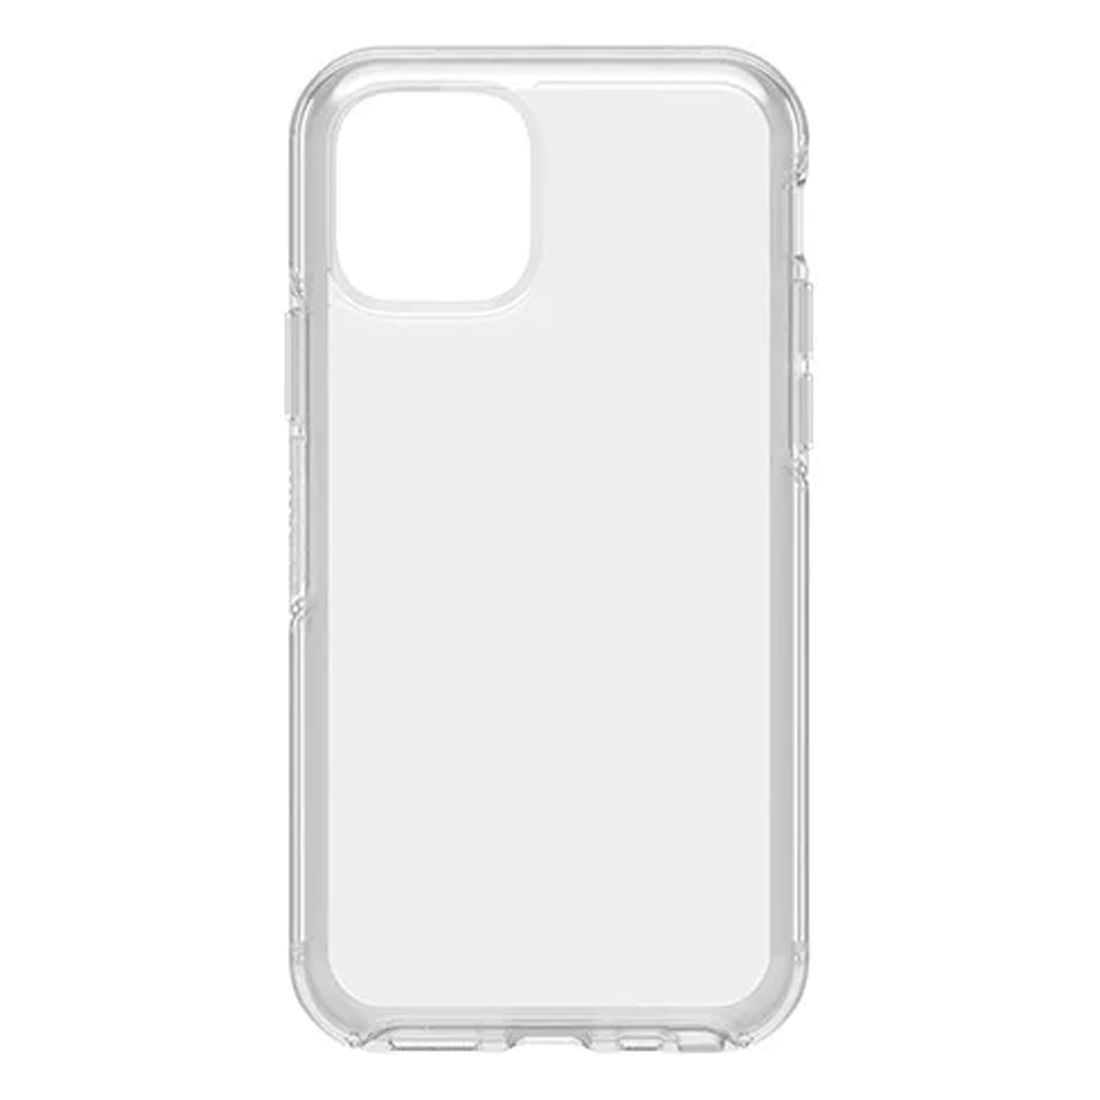 Otterbox Symmetry Clear Case for Apple iPhone 11 Pro - Clear